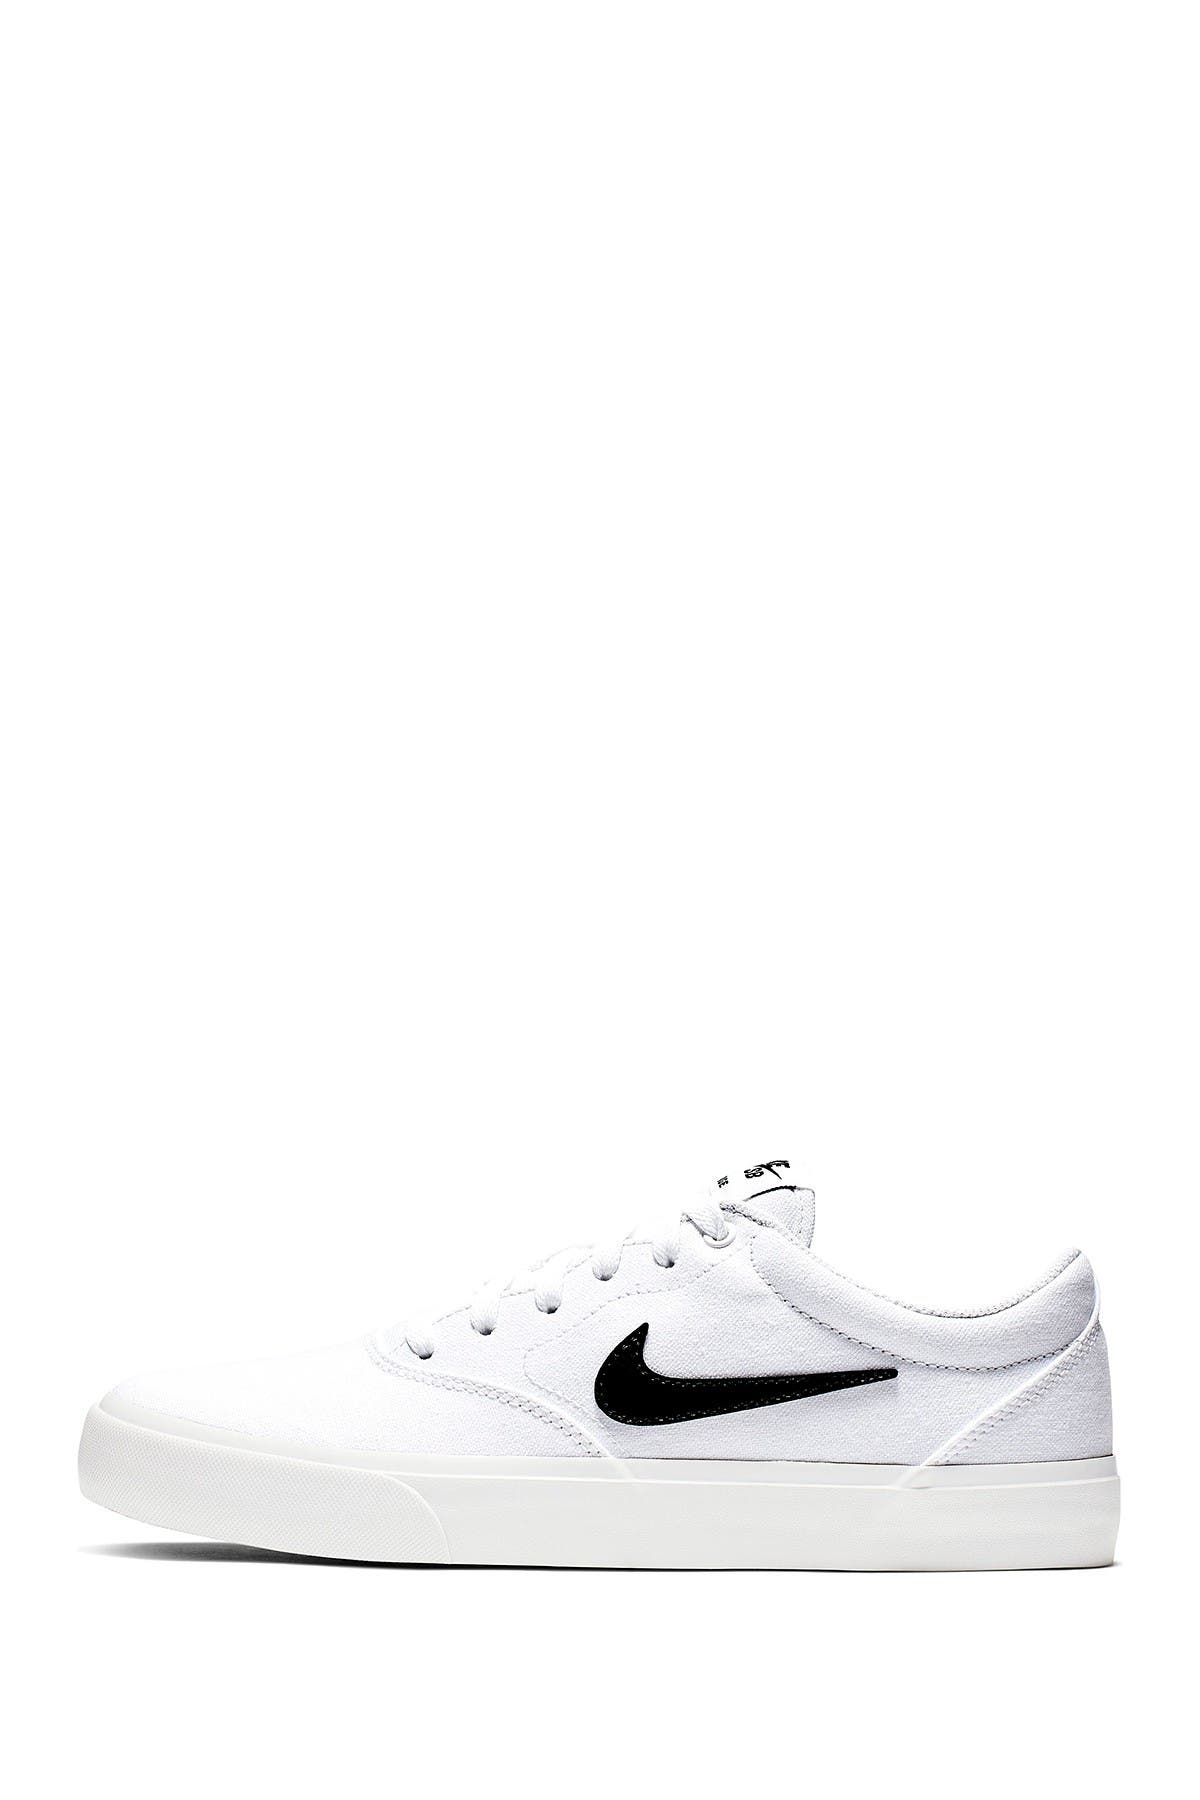 Charge Slr Nike Online Deals, UP TO 53% OFF